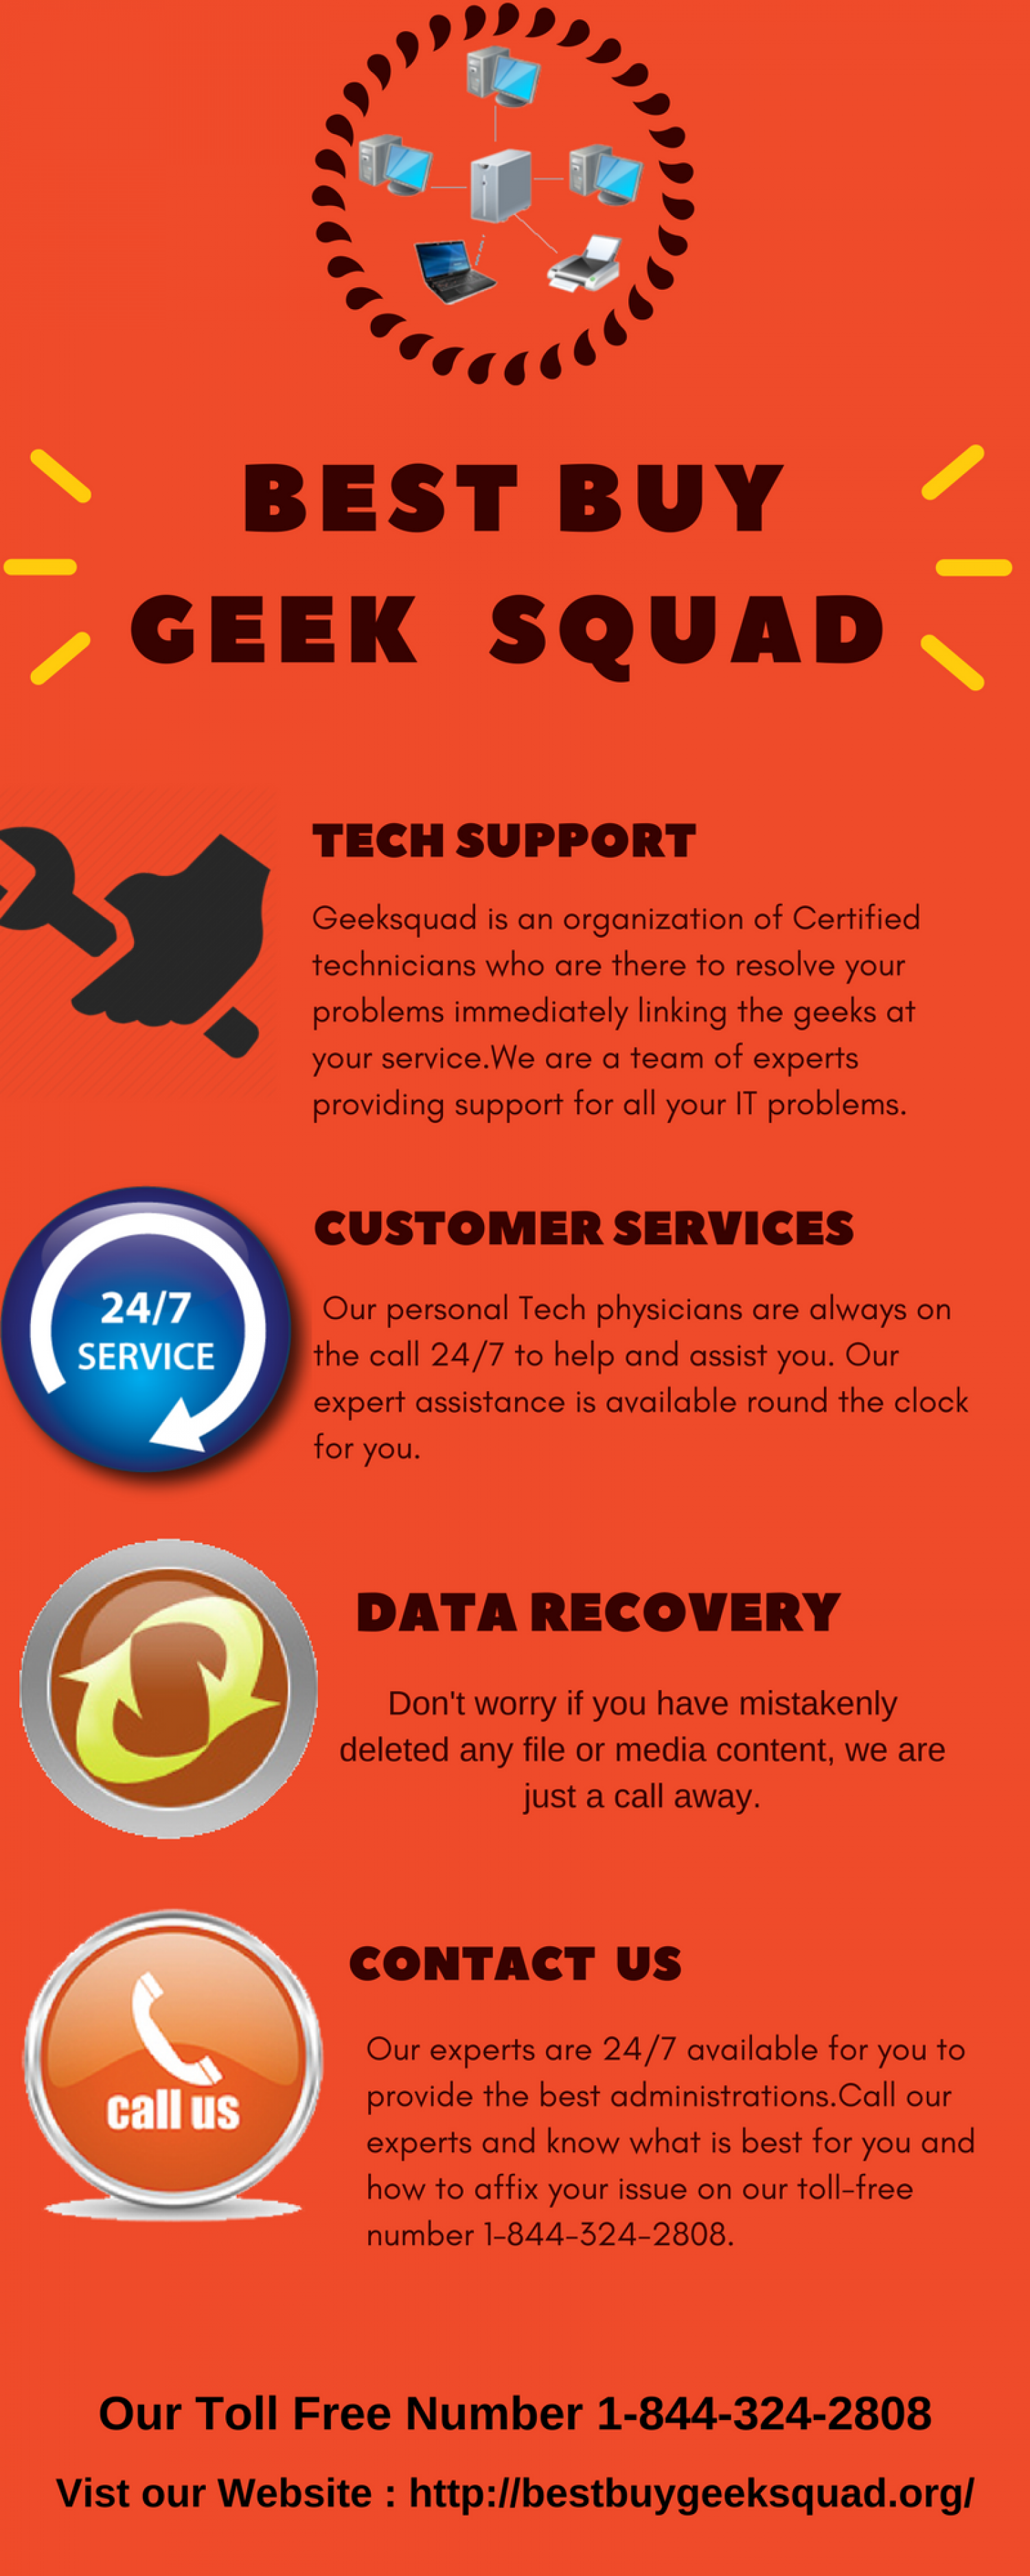 Best Buy Geek Squad Services 1-844-324-2808 Phone Number Infographic